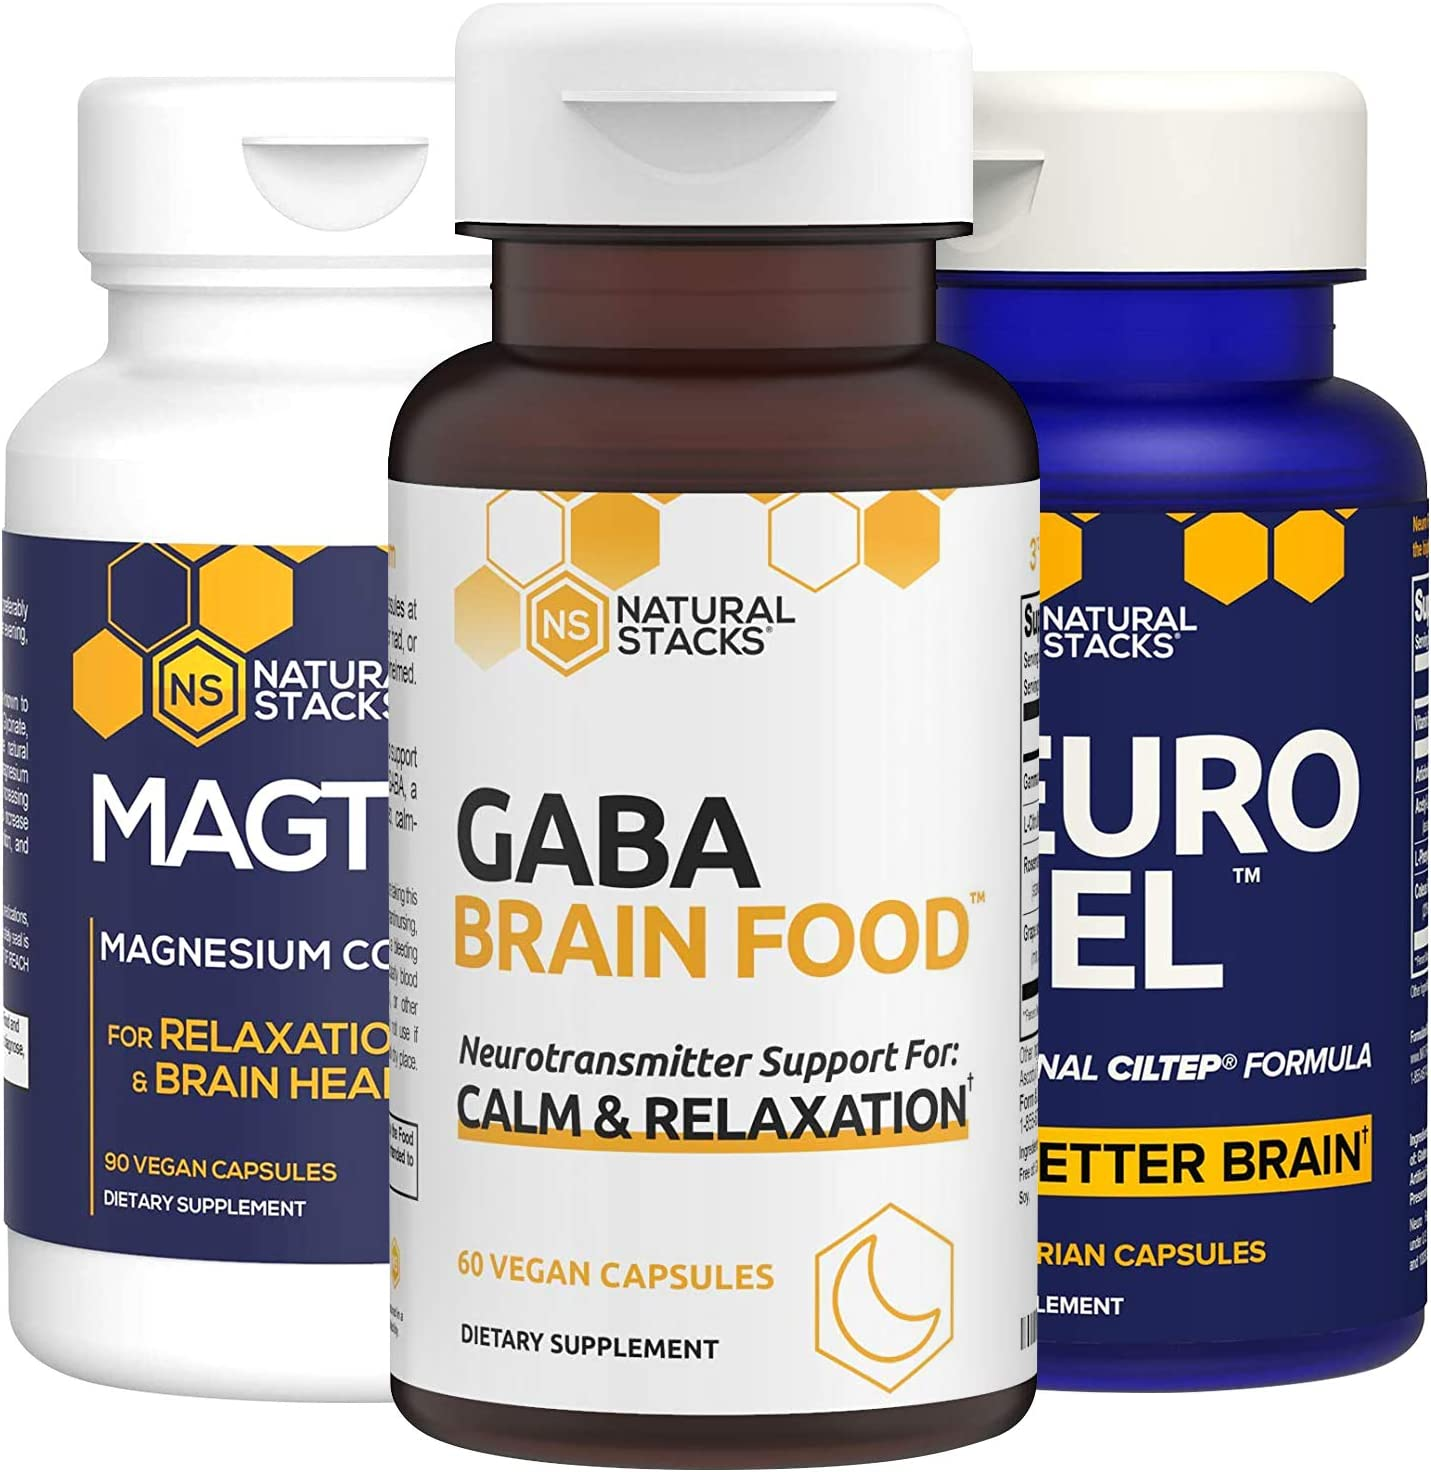 Natural Stacks Supplements Bundle - MagTech Magnesium (90ct), NeuroFuel Brain Supplement (45ct), GABA Brain Food (60ct) - Better Sleep, Improved Focus, Memory, and Motivation, Muscle Recovery